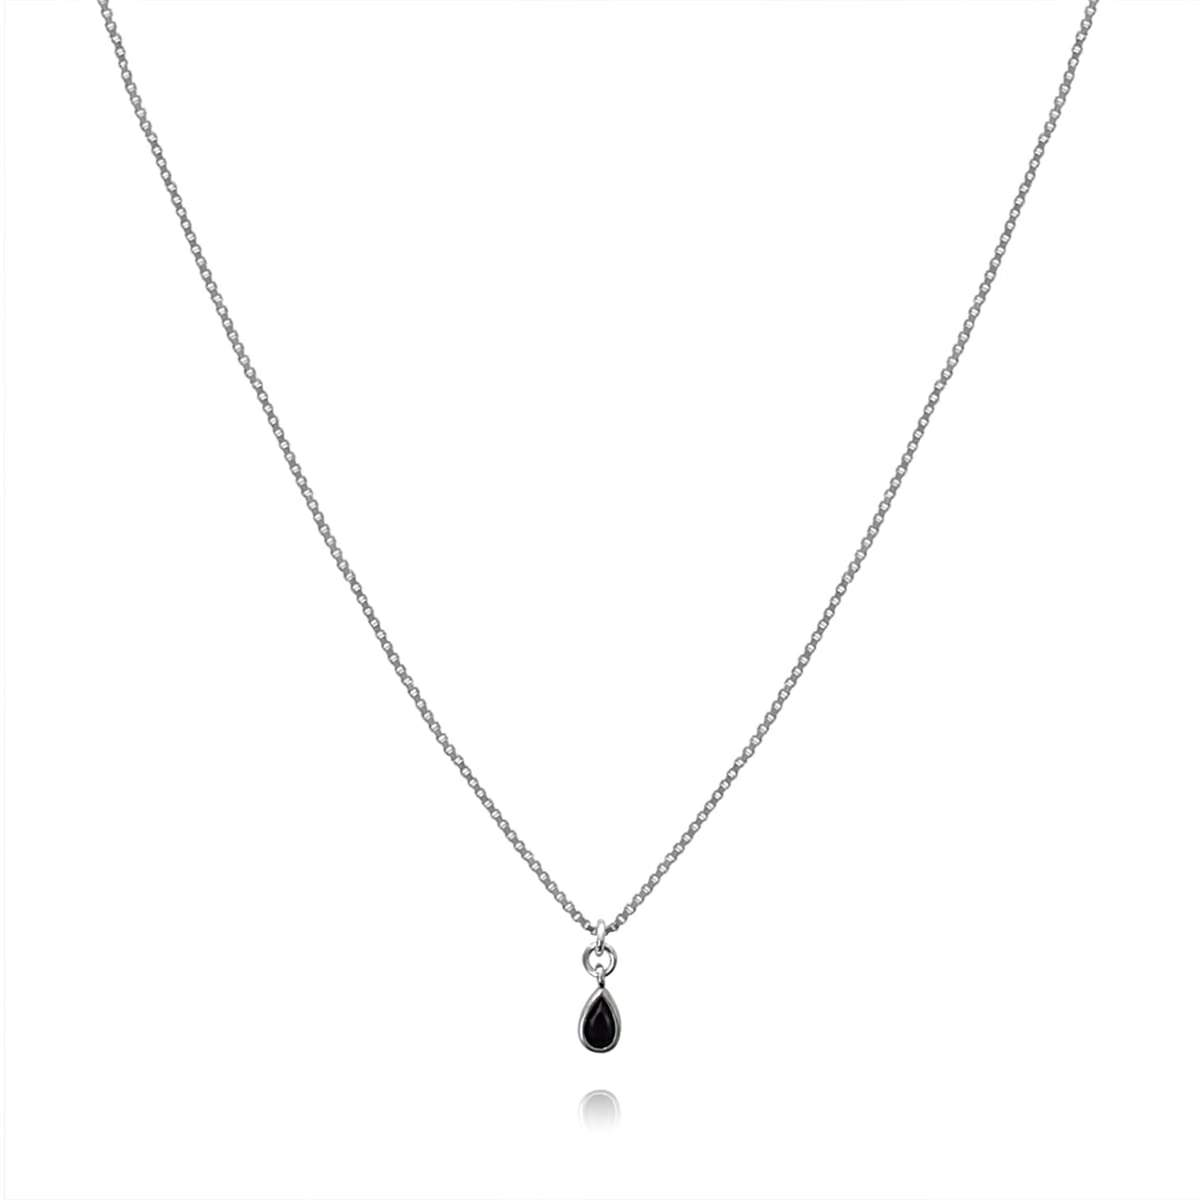 Necklace with Tiny Black Drop Sterling silver 925